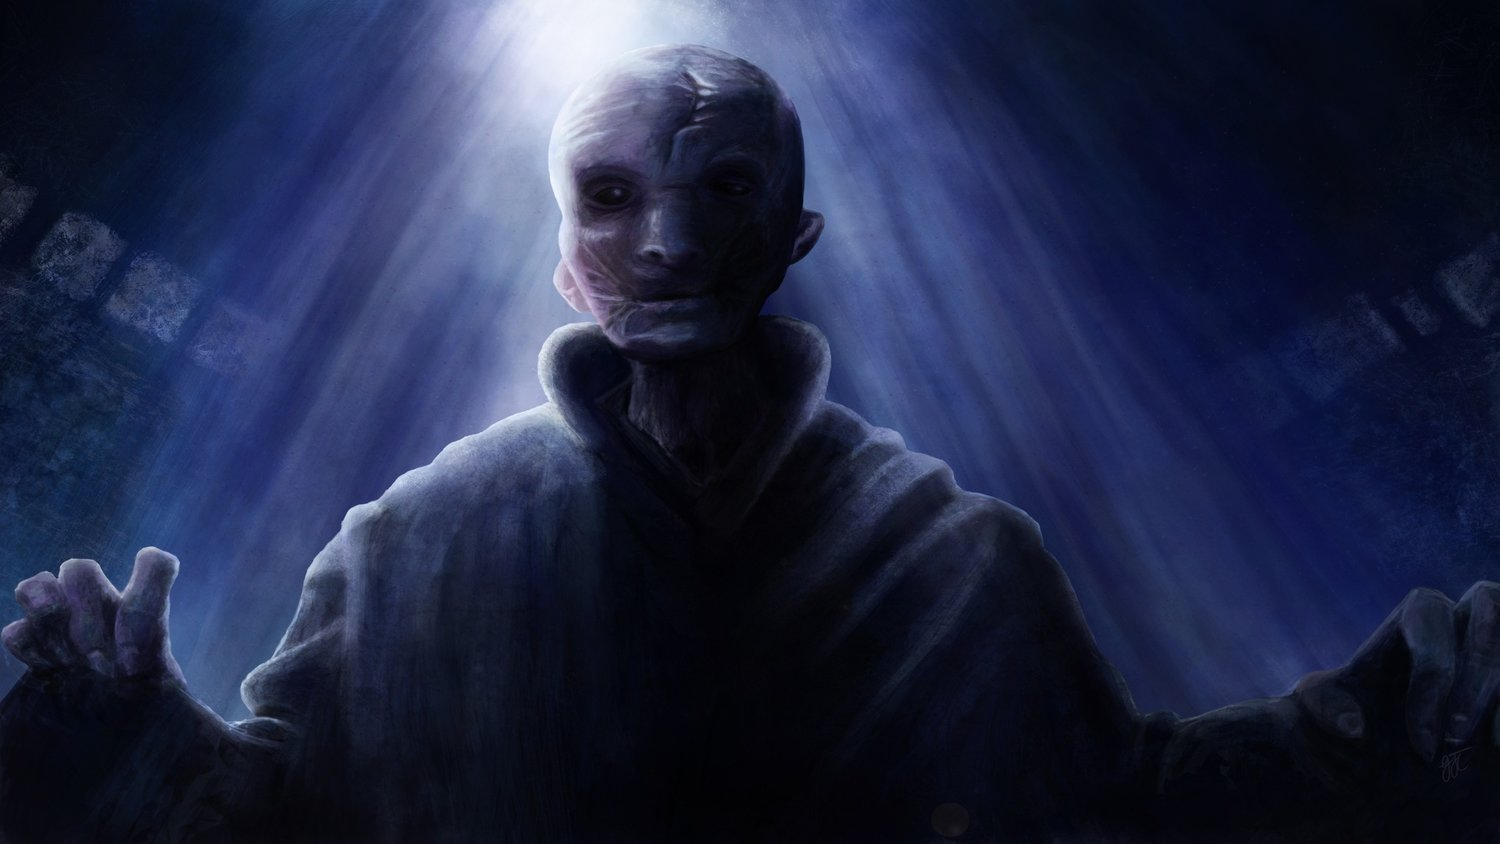 STAR WARS: AFTERMATH Book Potentially Contains Clues to Supreme Leader Snoke's Origin